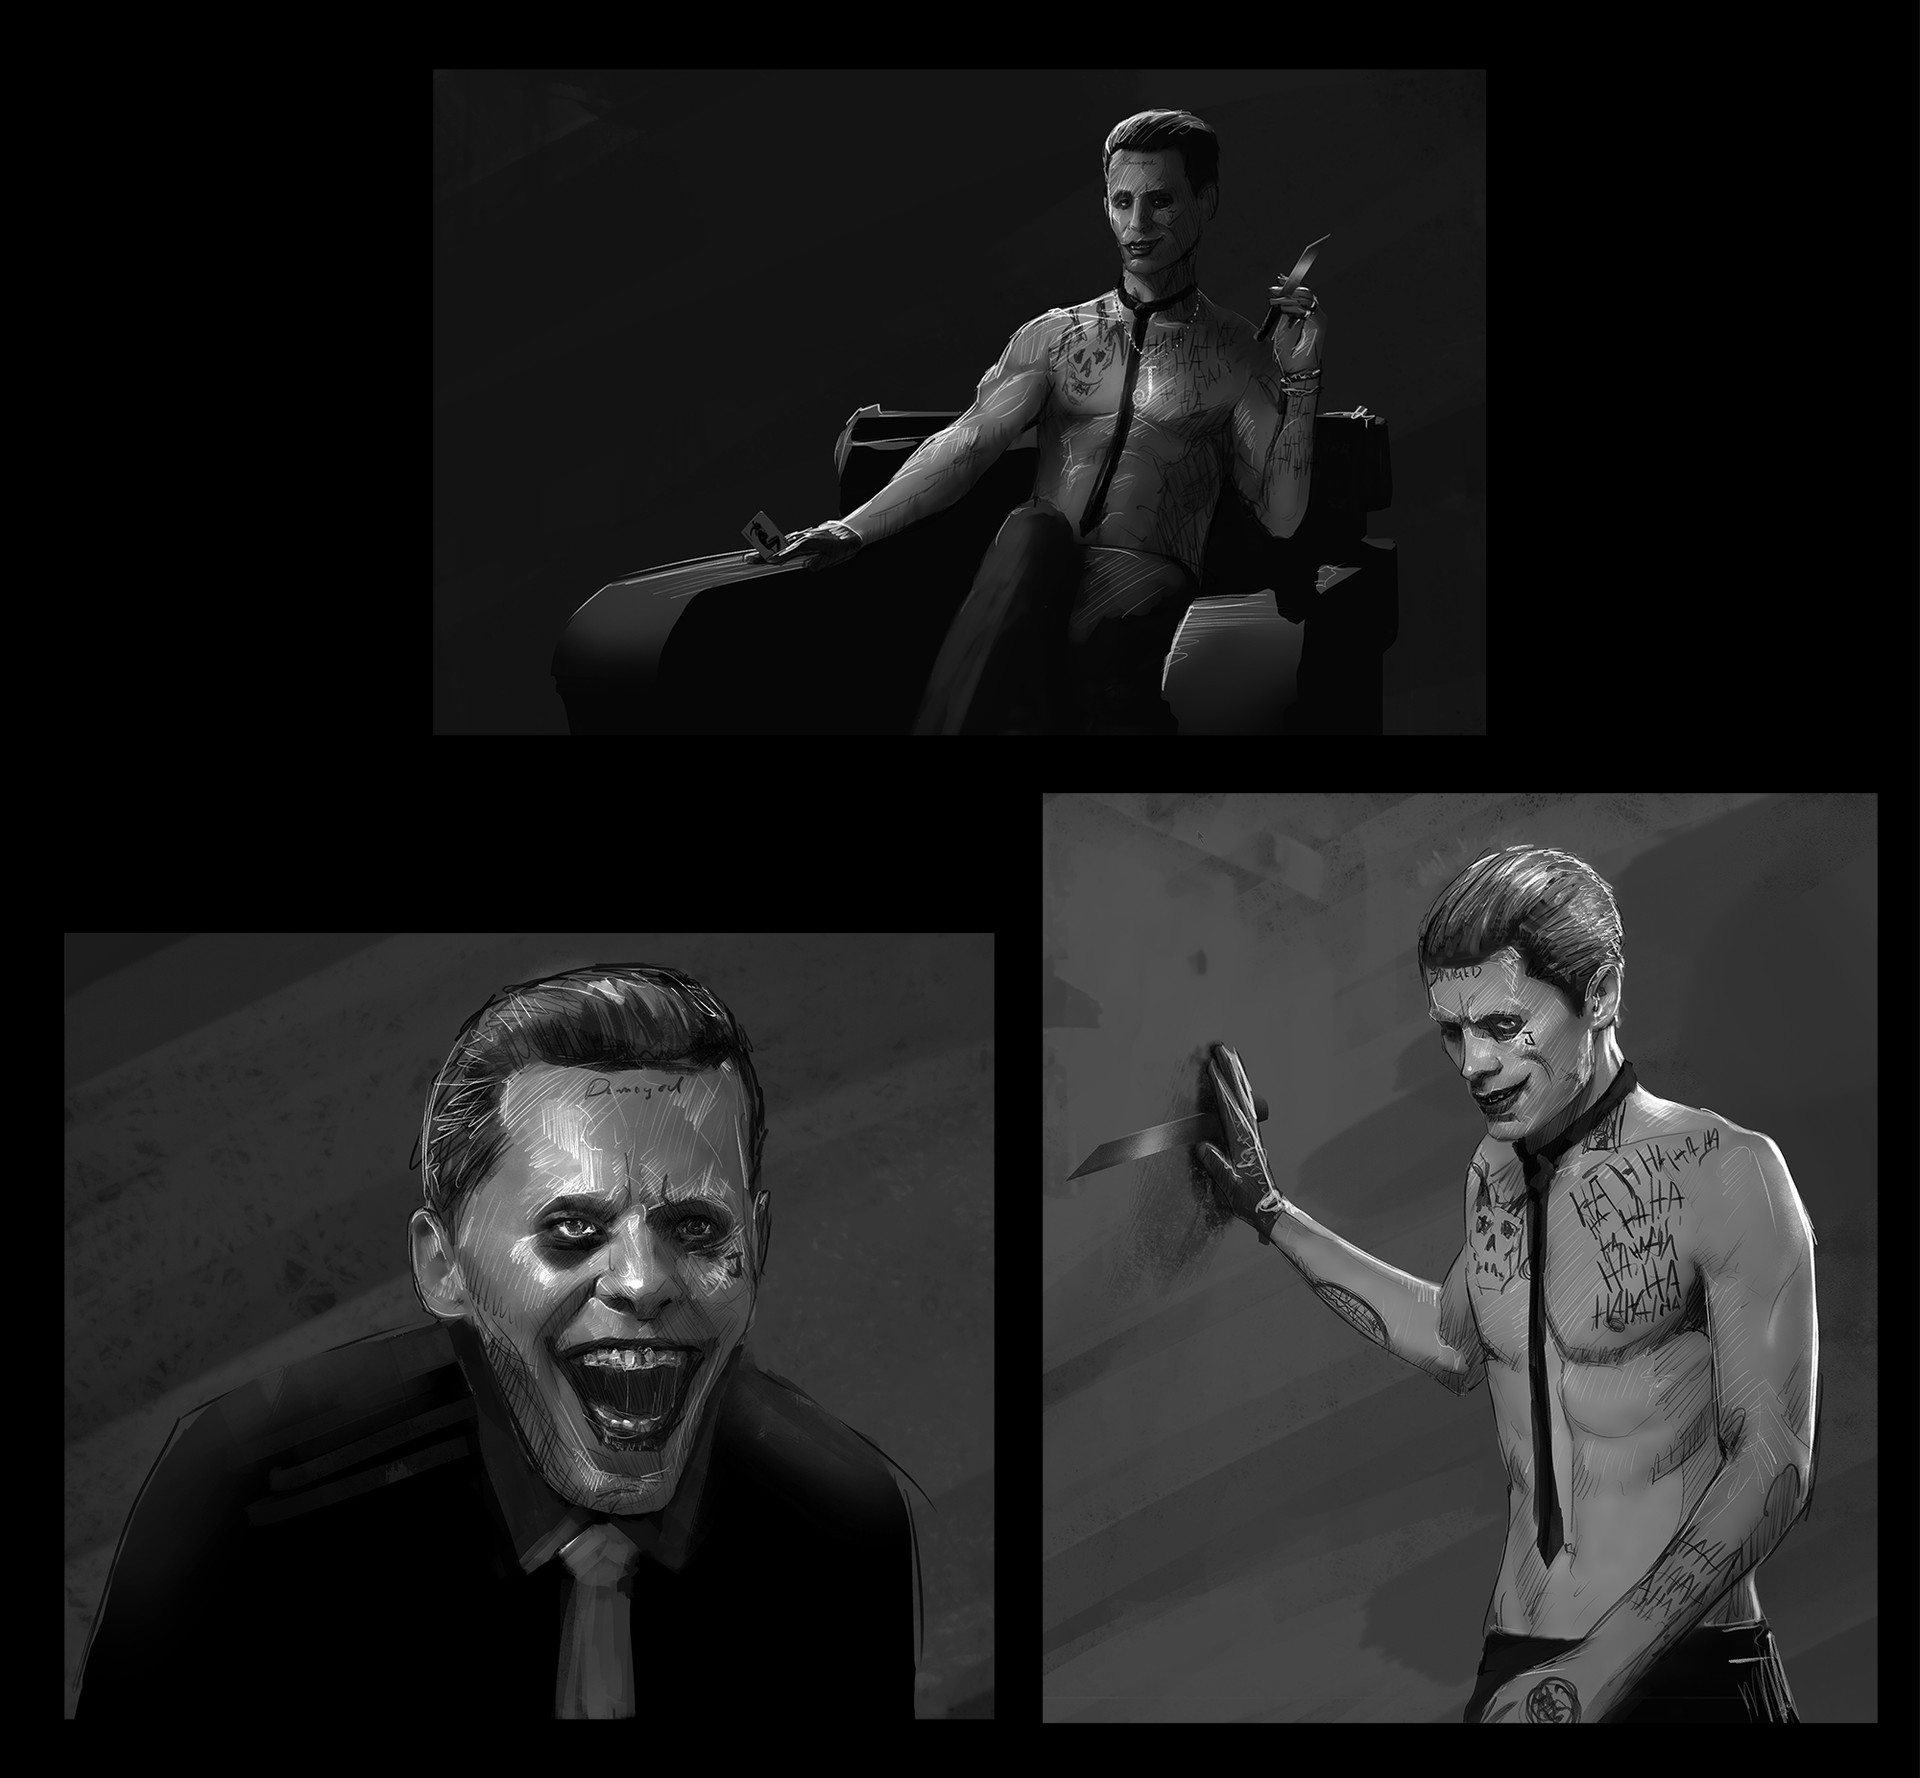 Andrew hunt suicide squx joker sketches